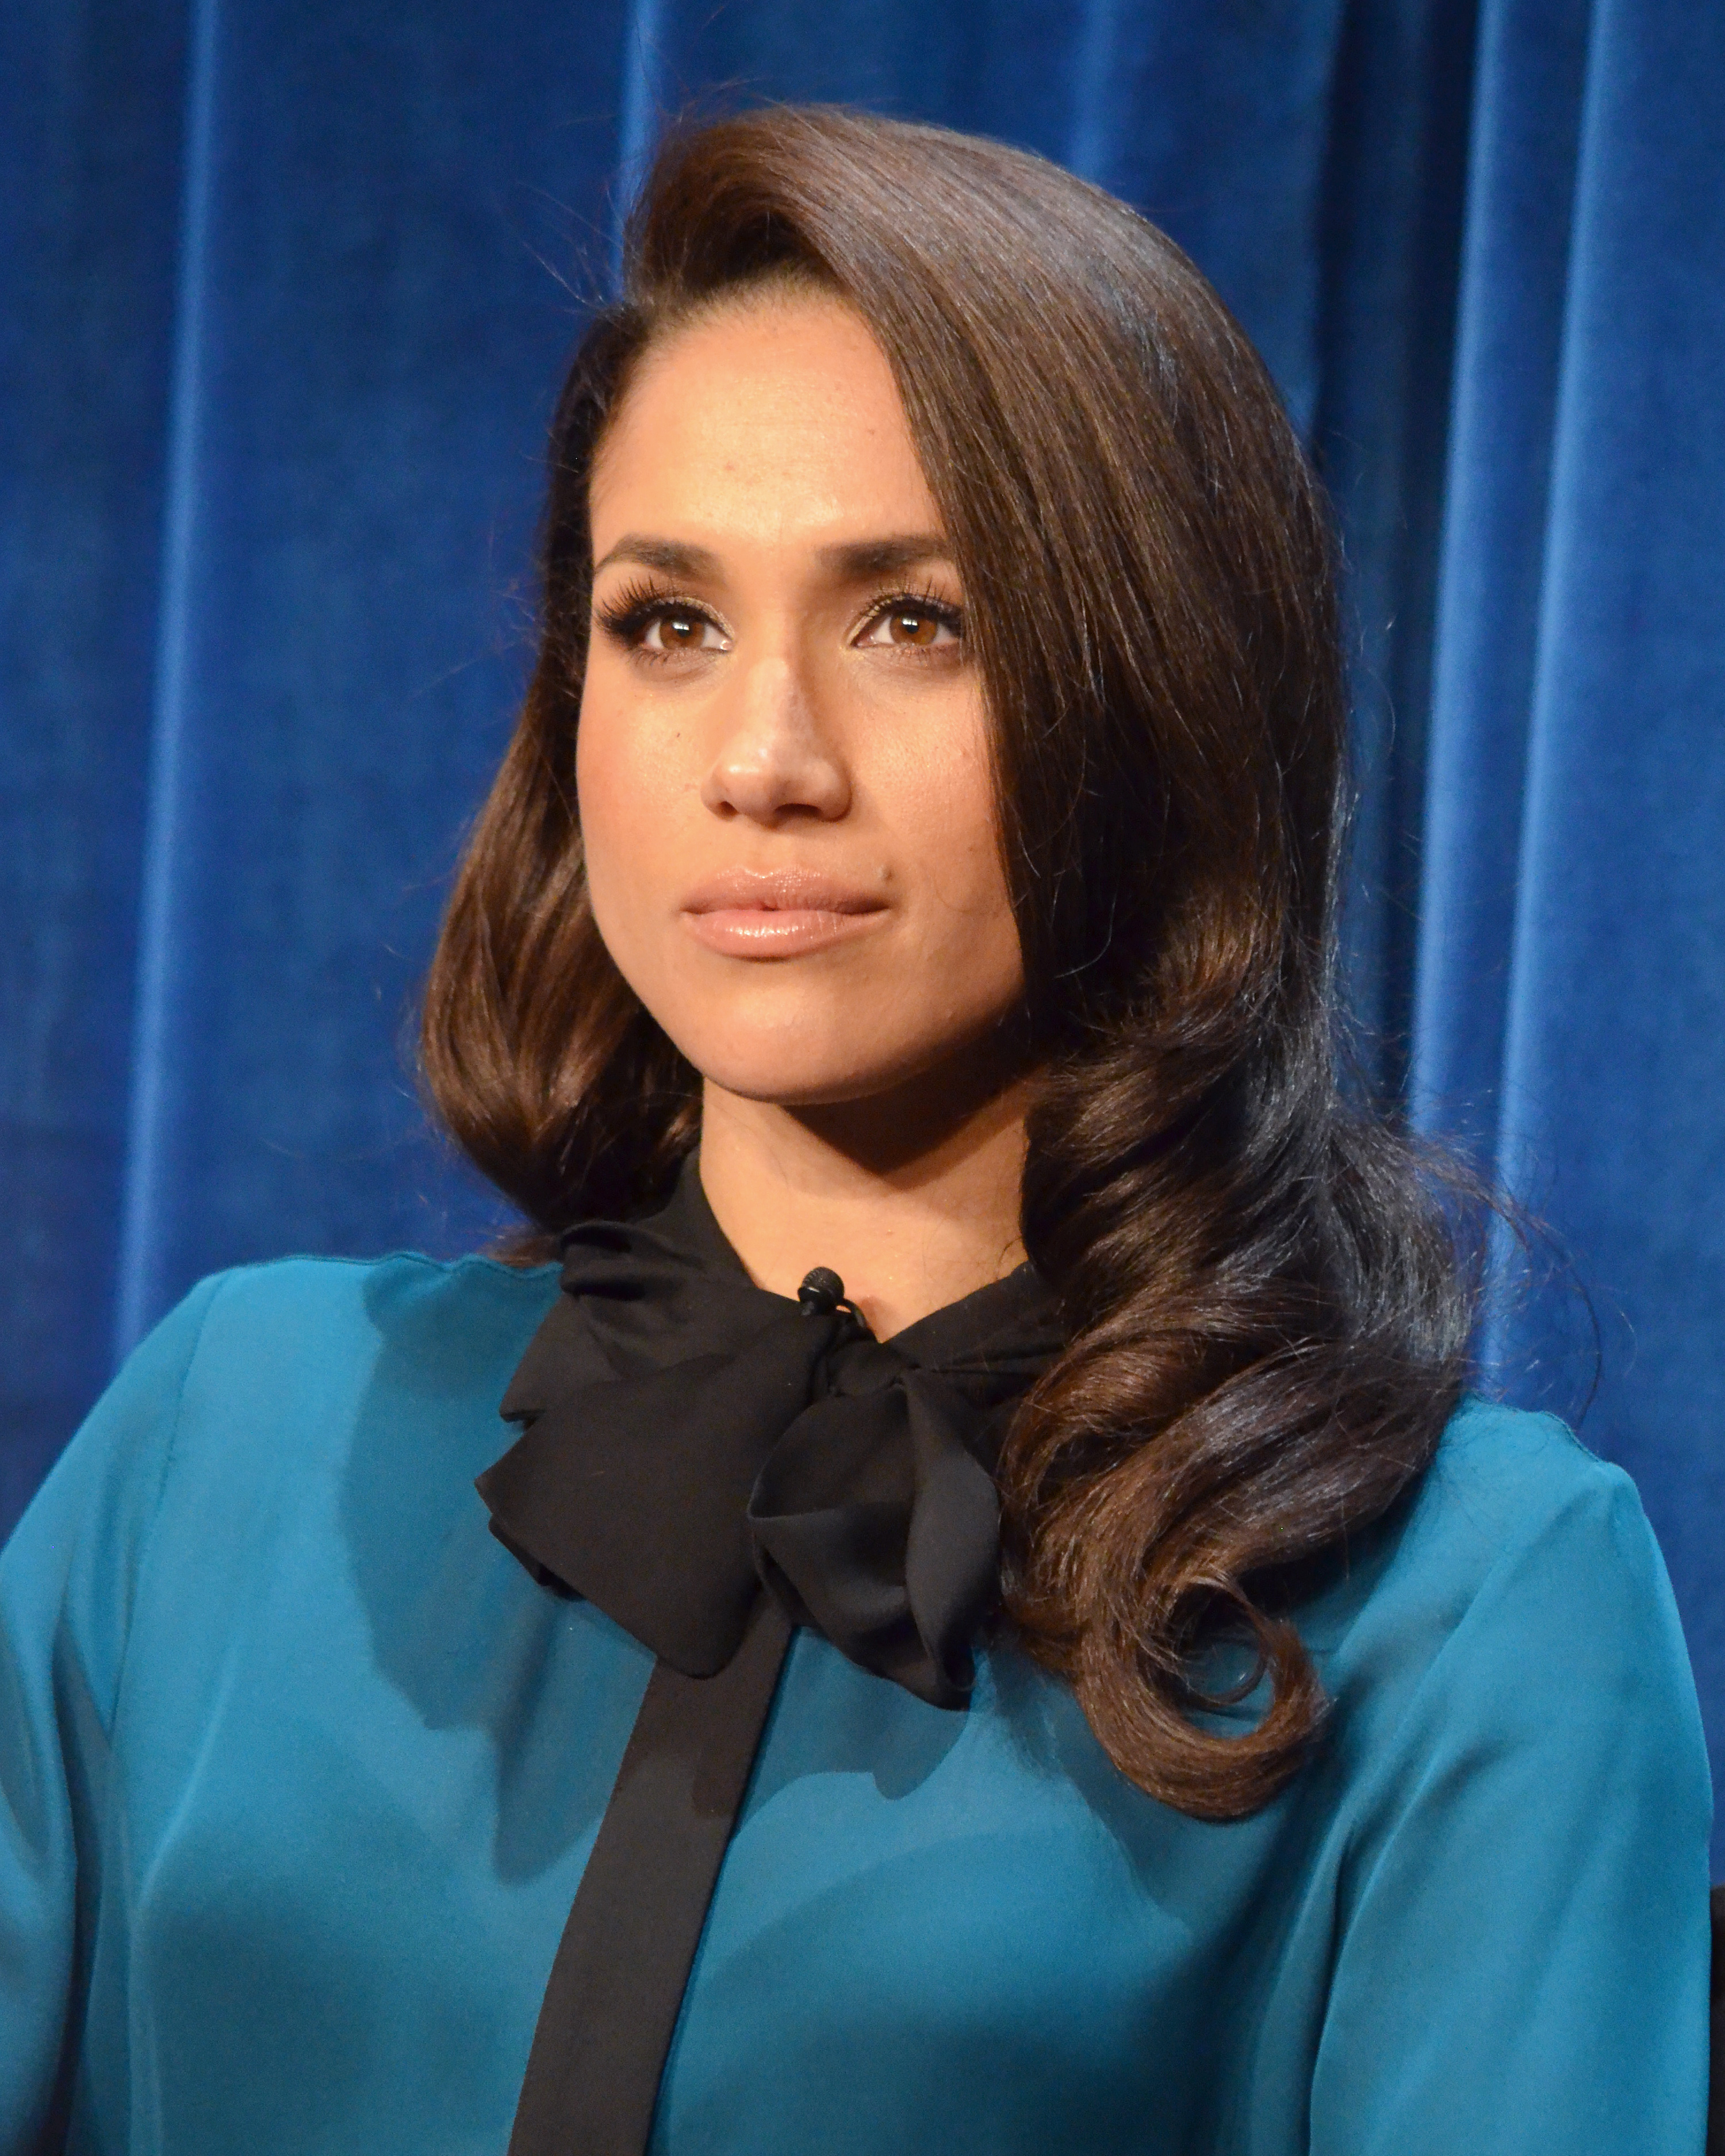 meghan markle age - photo #32